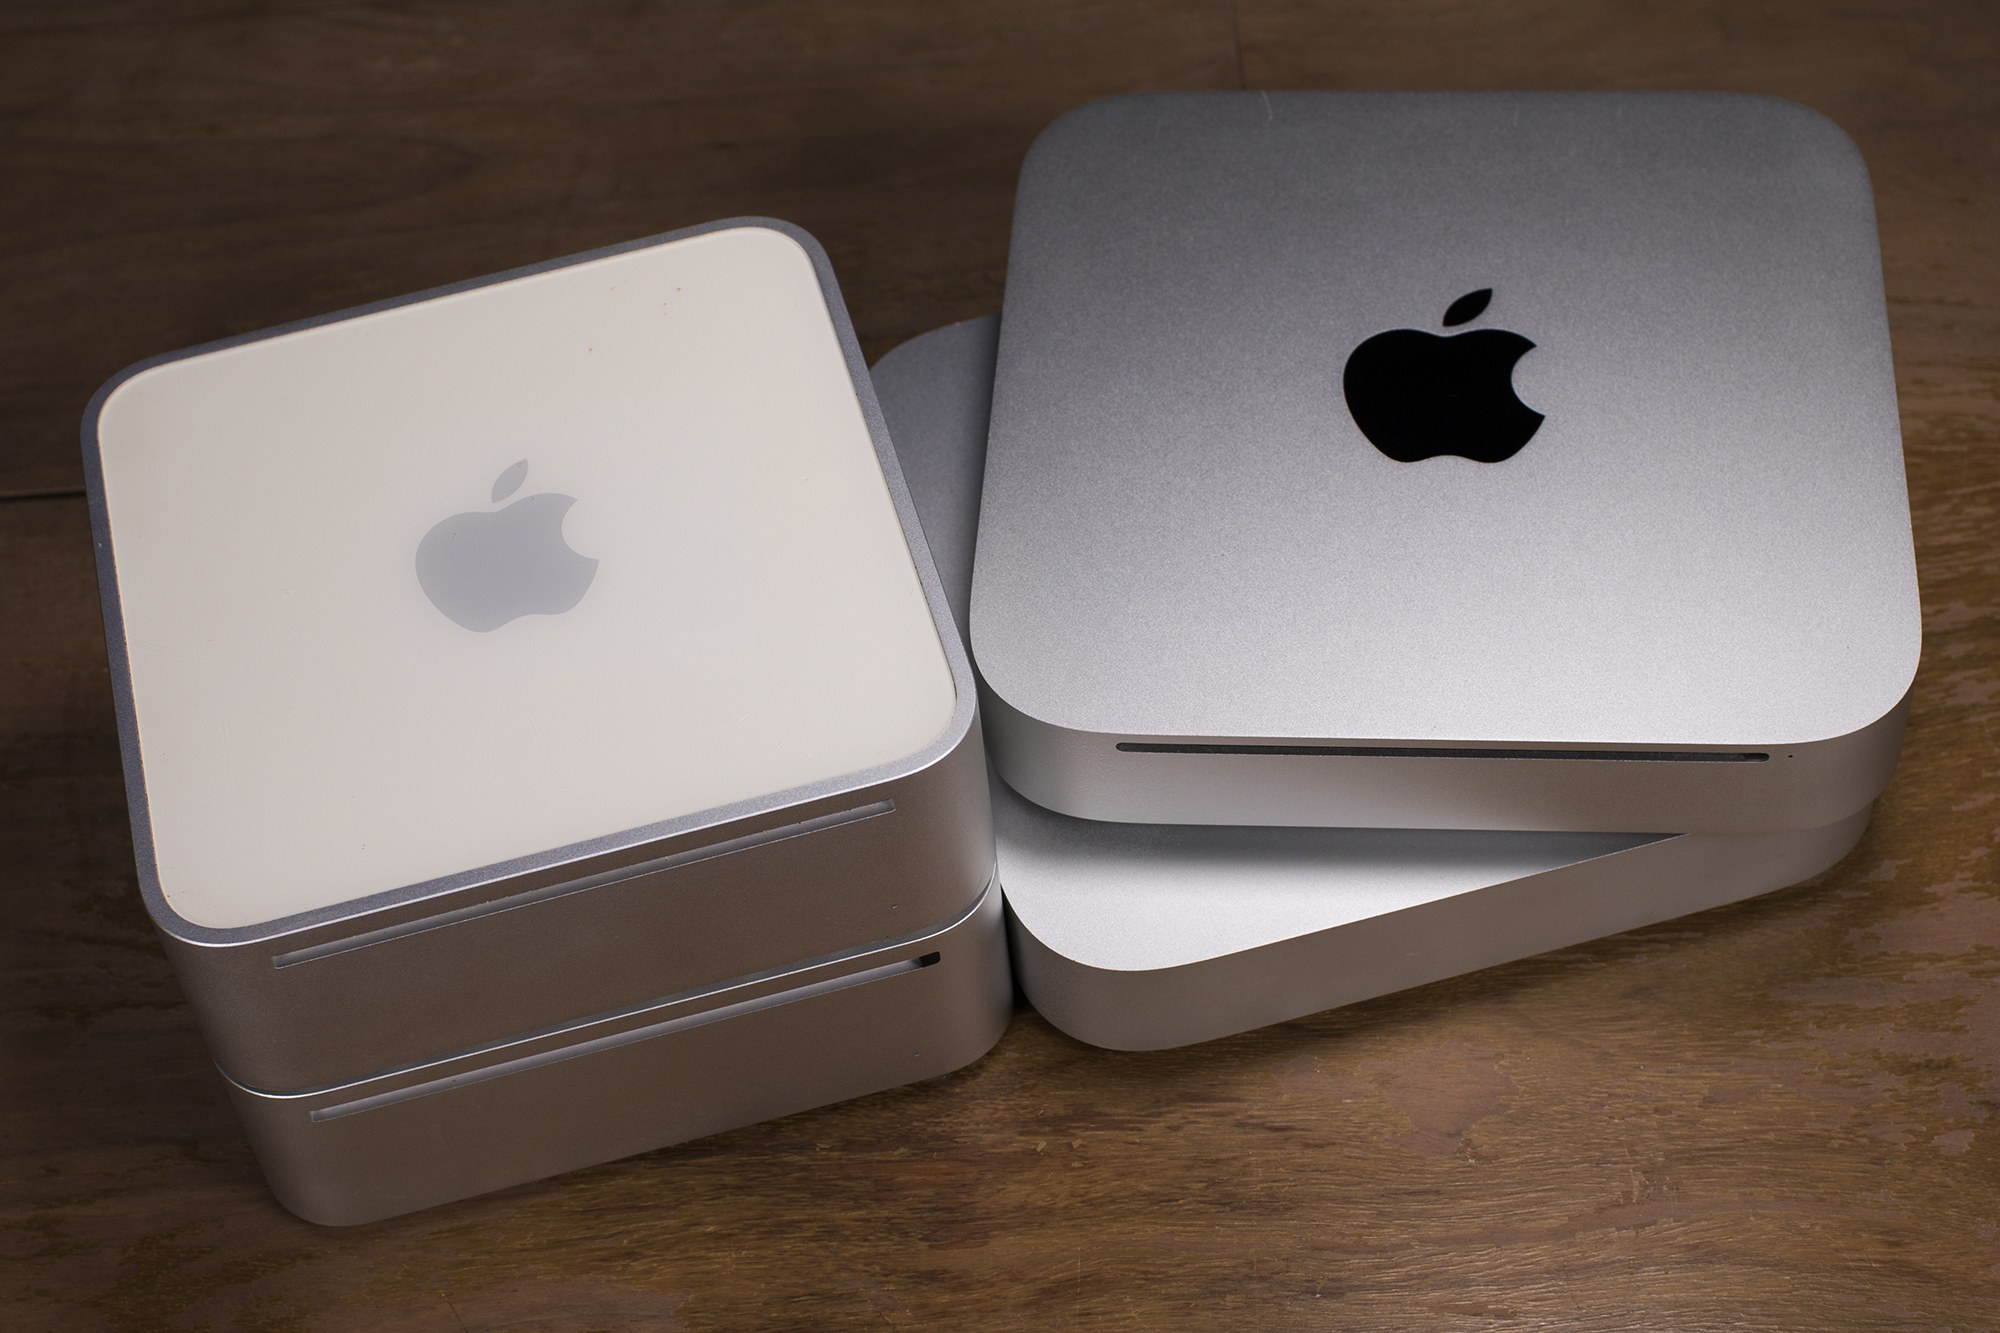 Four members of the Mac mini family.